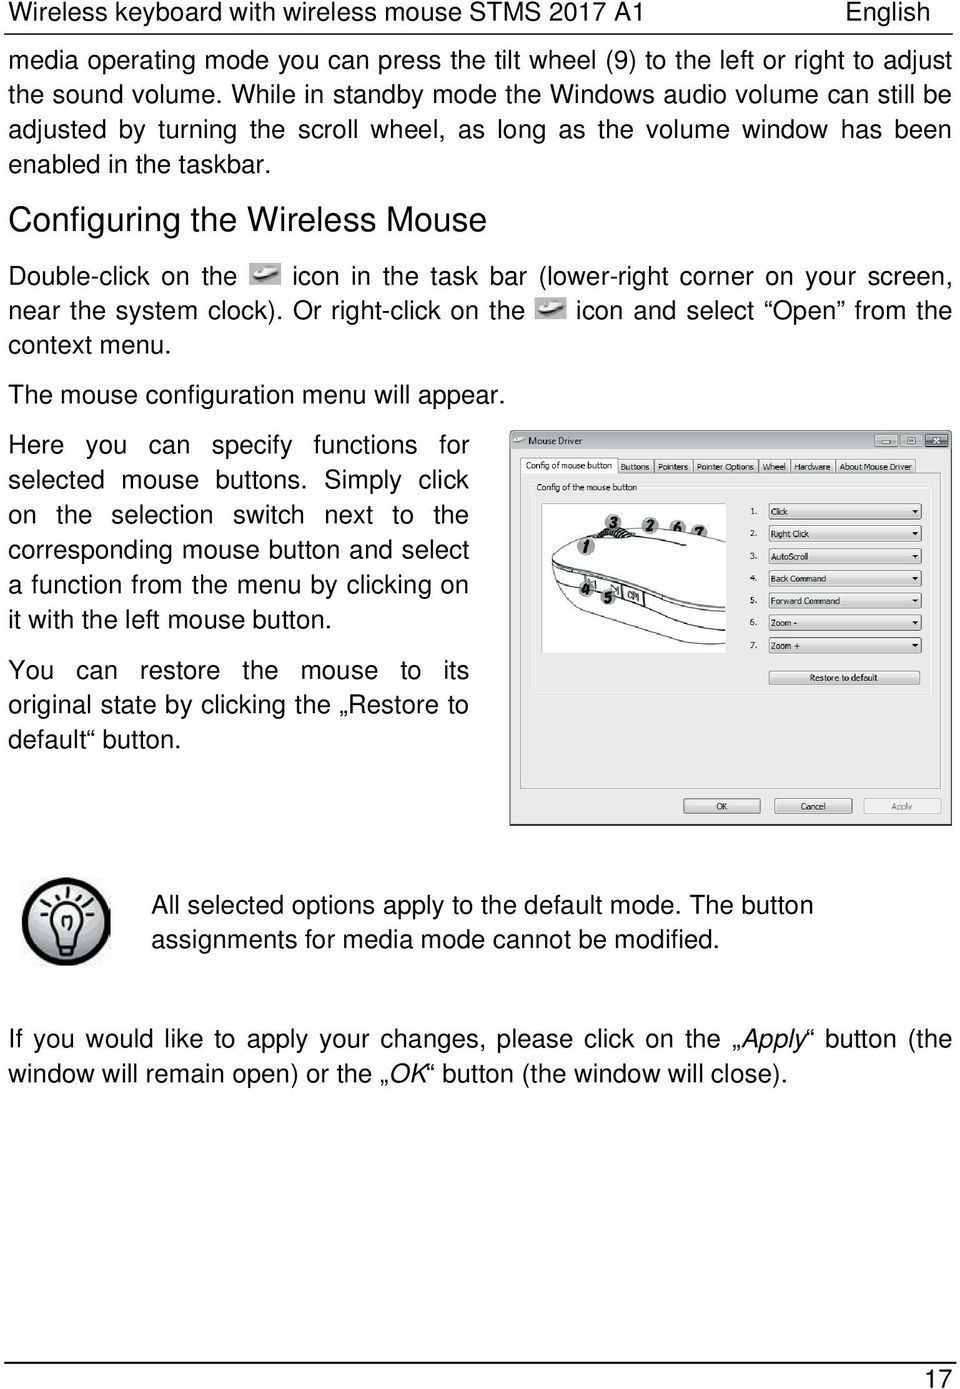 Configuring the Wireless Mouse Double-click on the icon in the task bar (lower-right corner on your screen, near the system clock). Or right-click on the icon and select Open from the context menu.